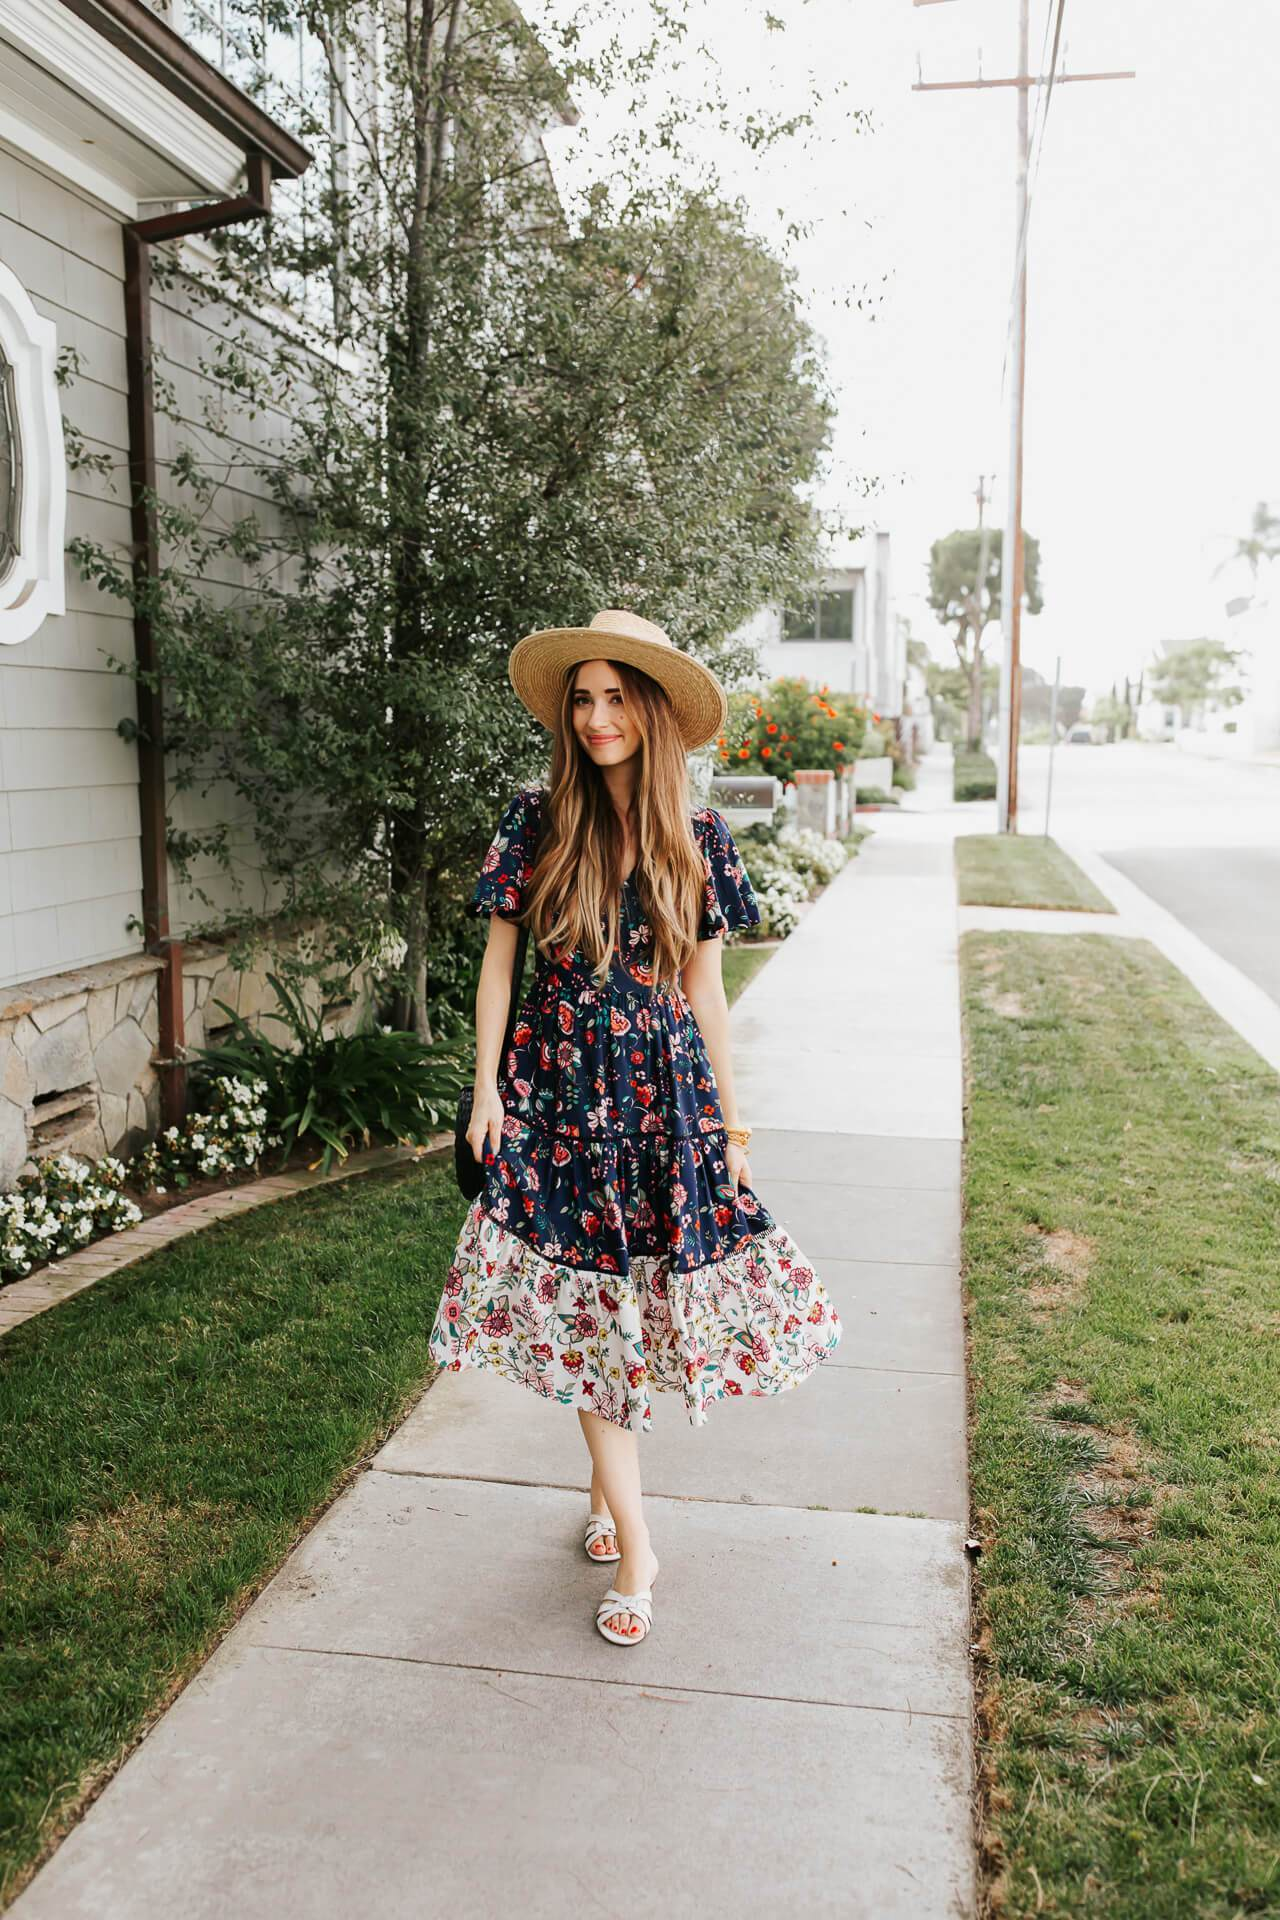 Transition into spring style with a floral midi dress! - M Loves M @marmar